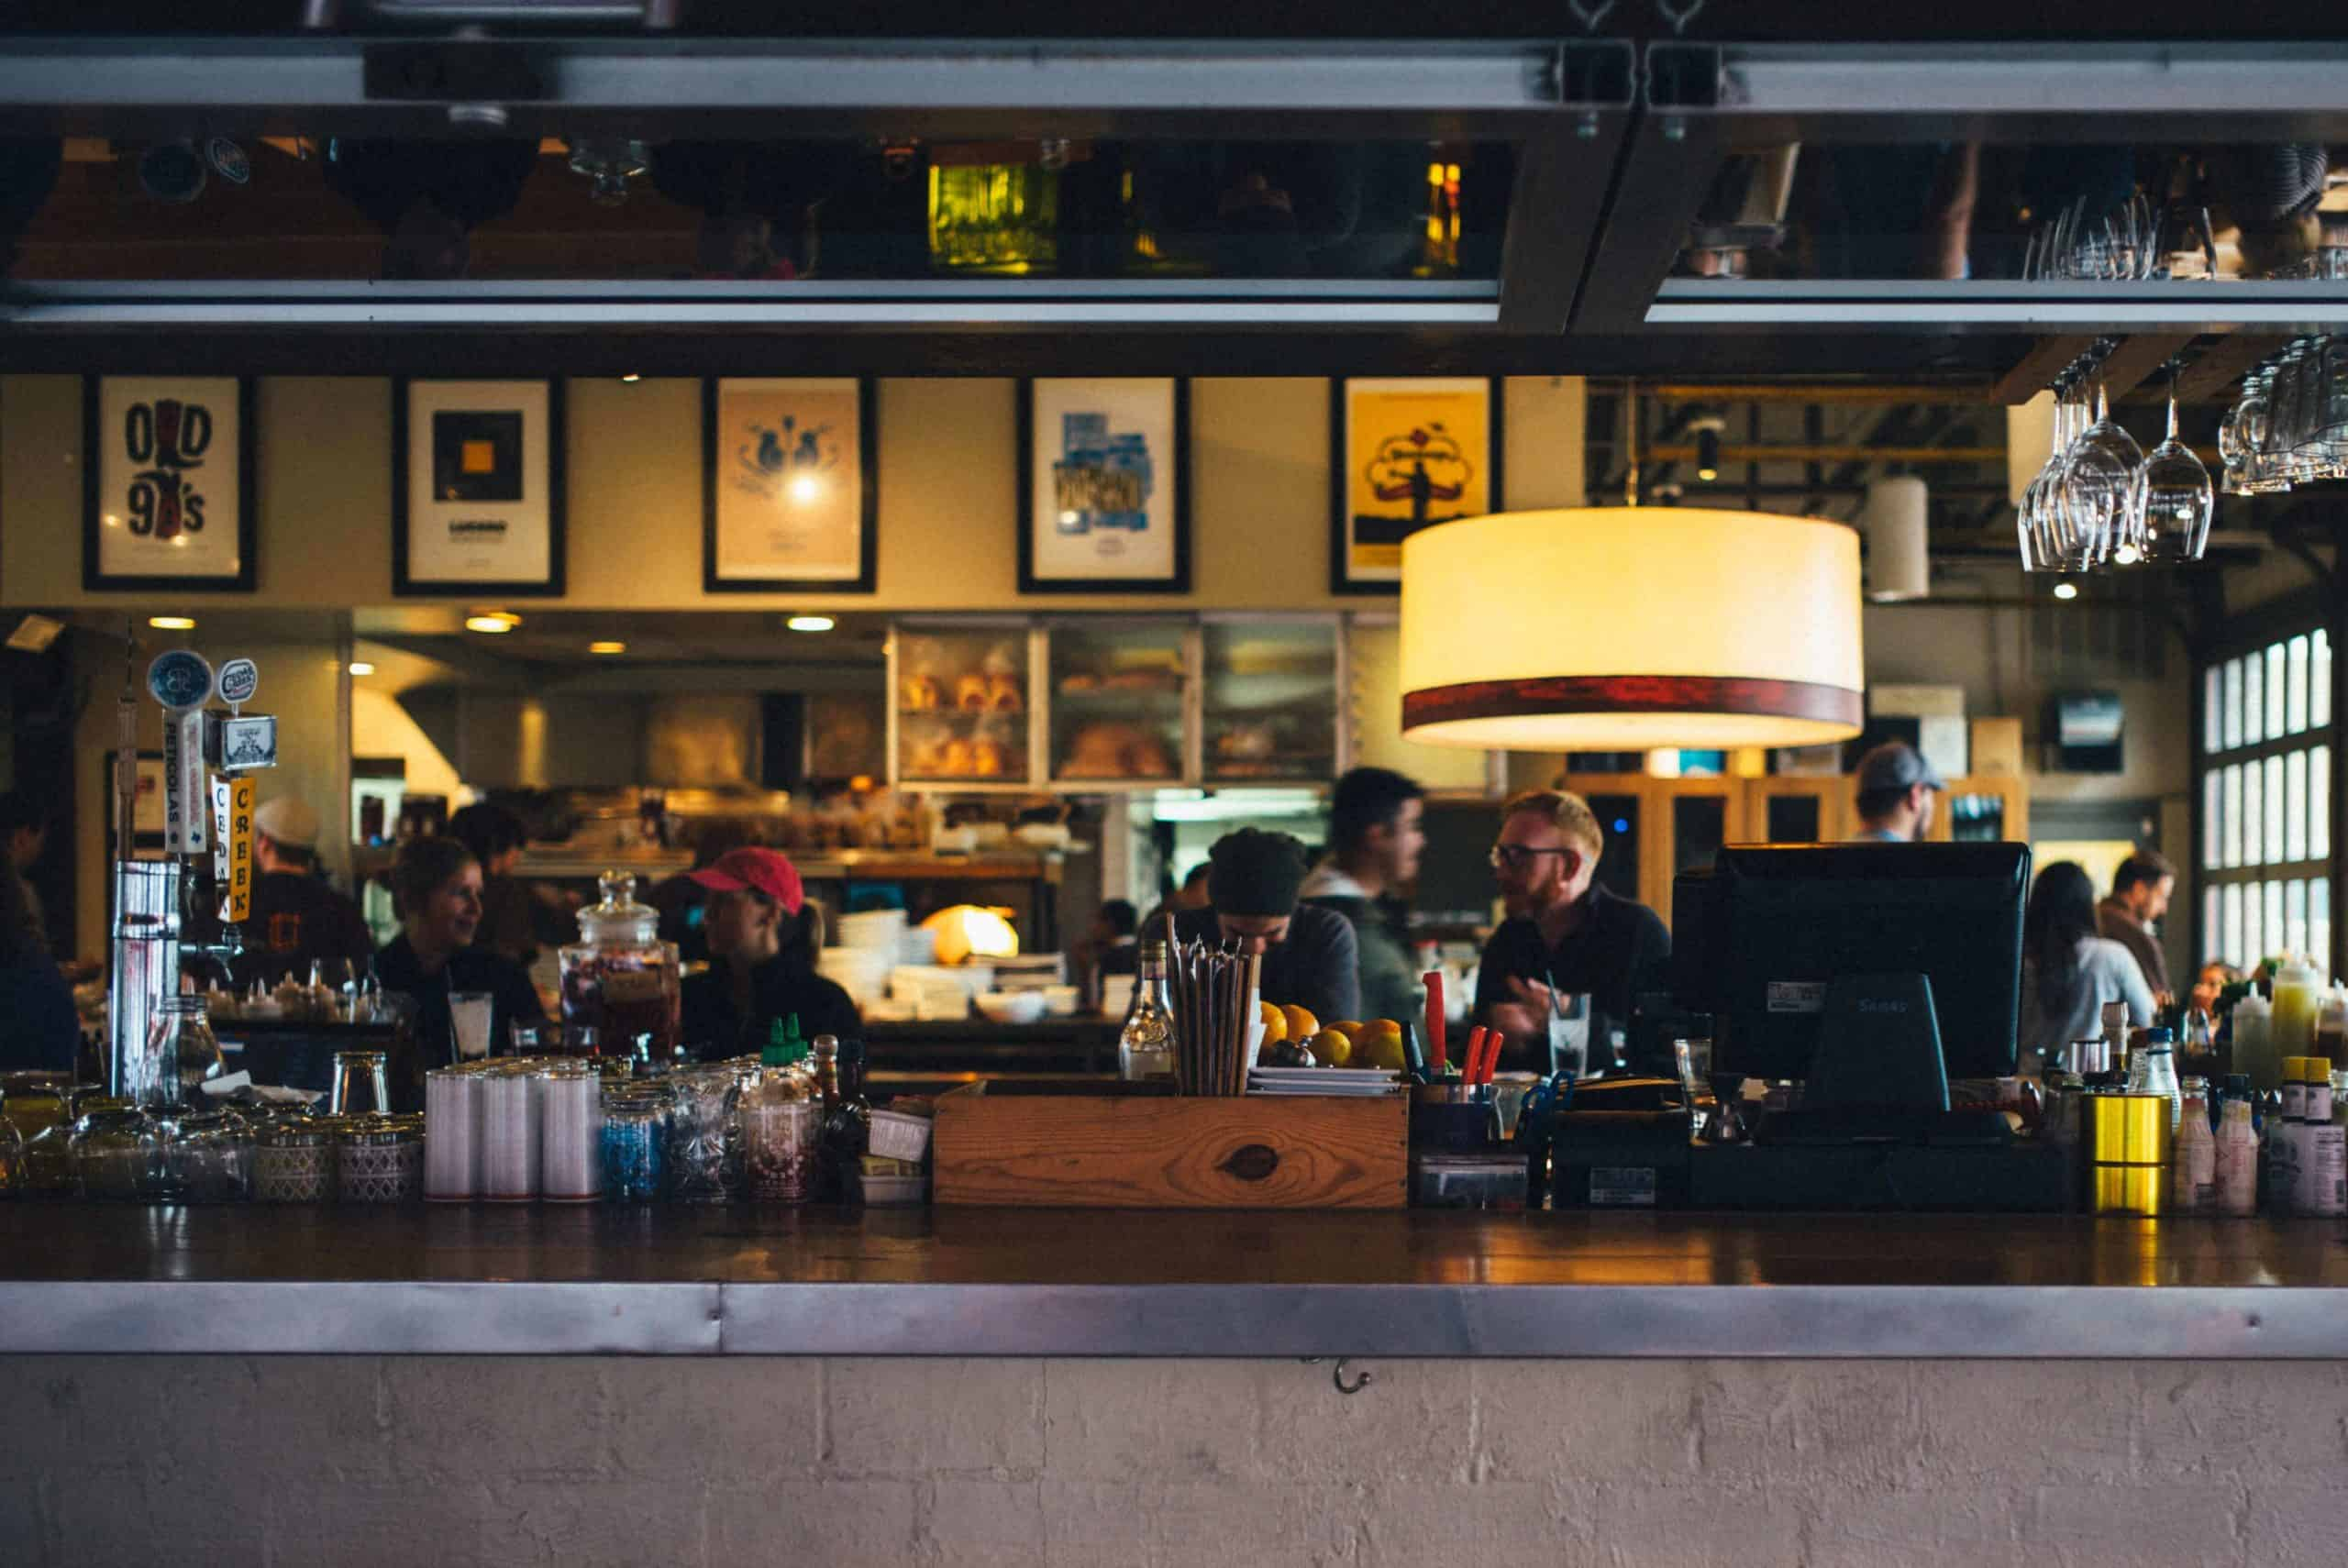 Restaurant stats you need to know